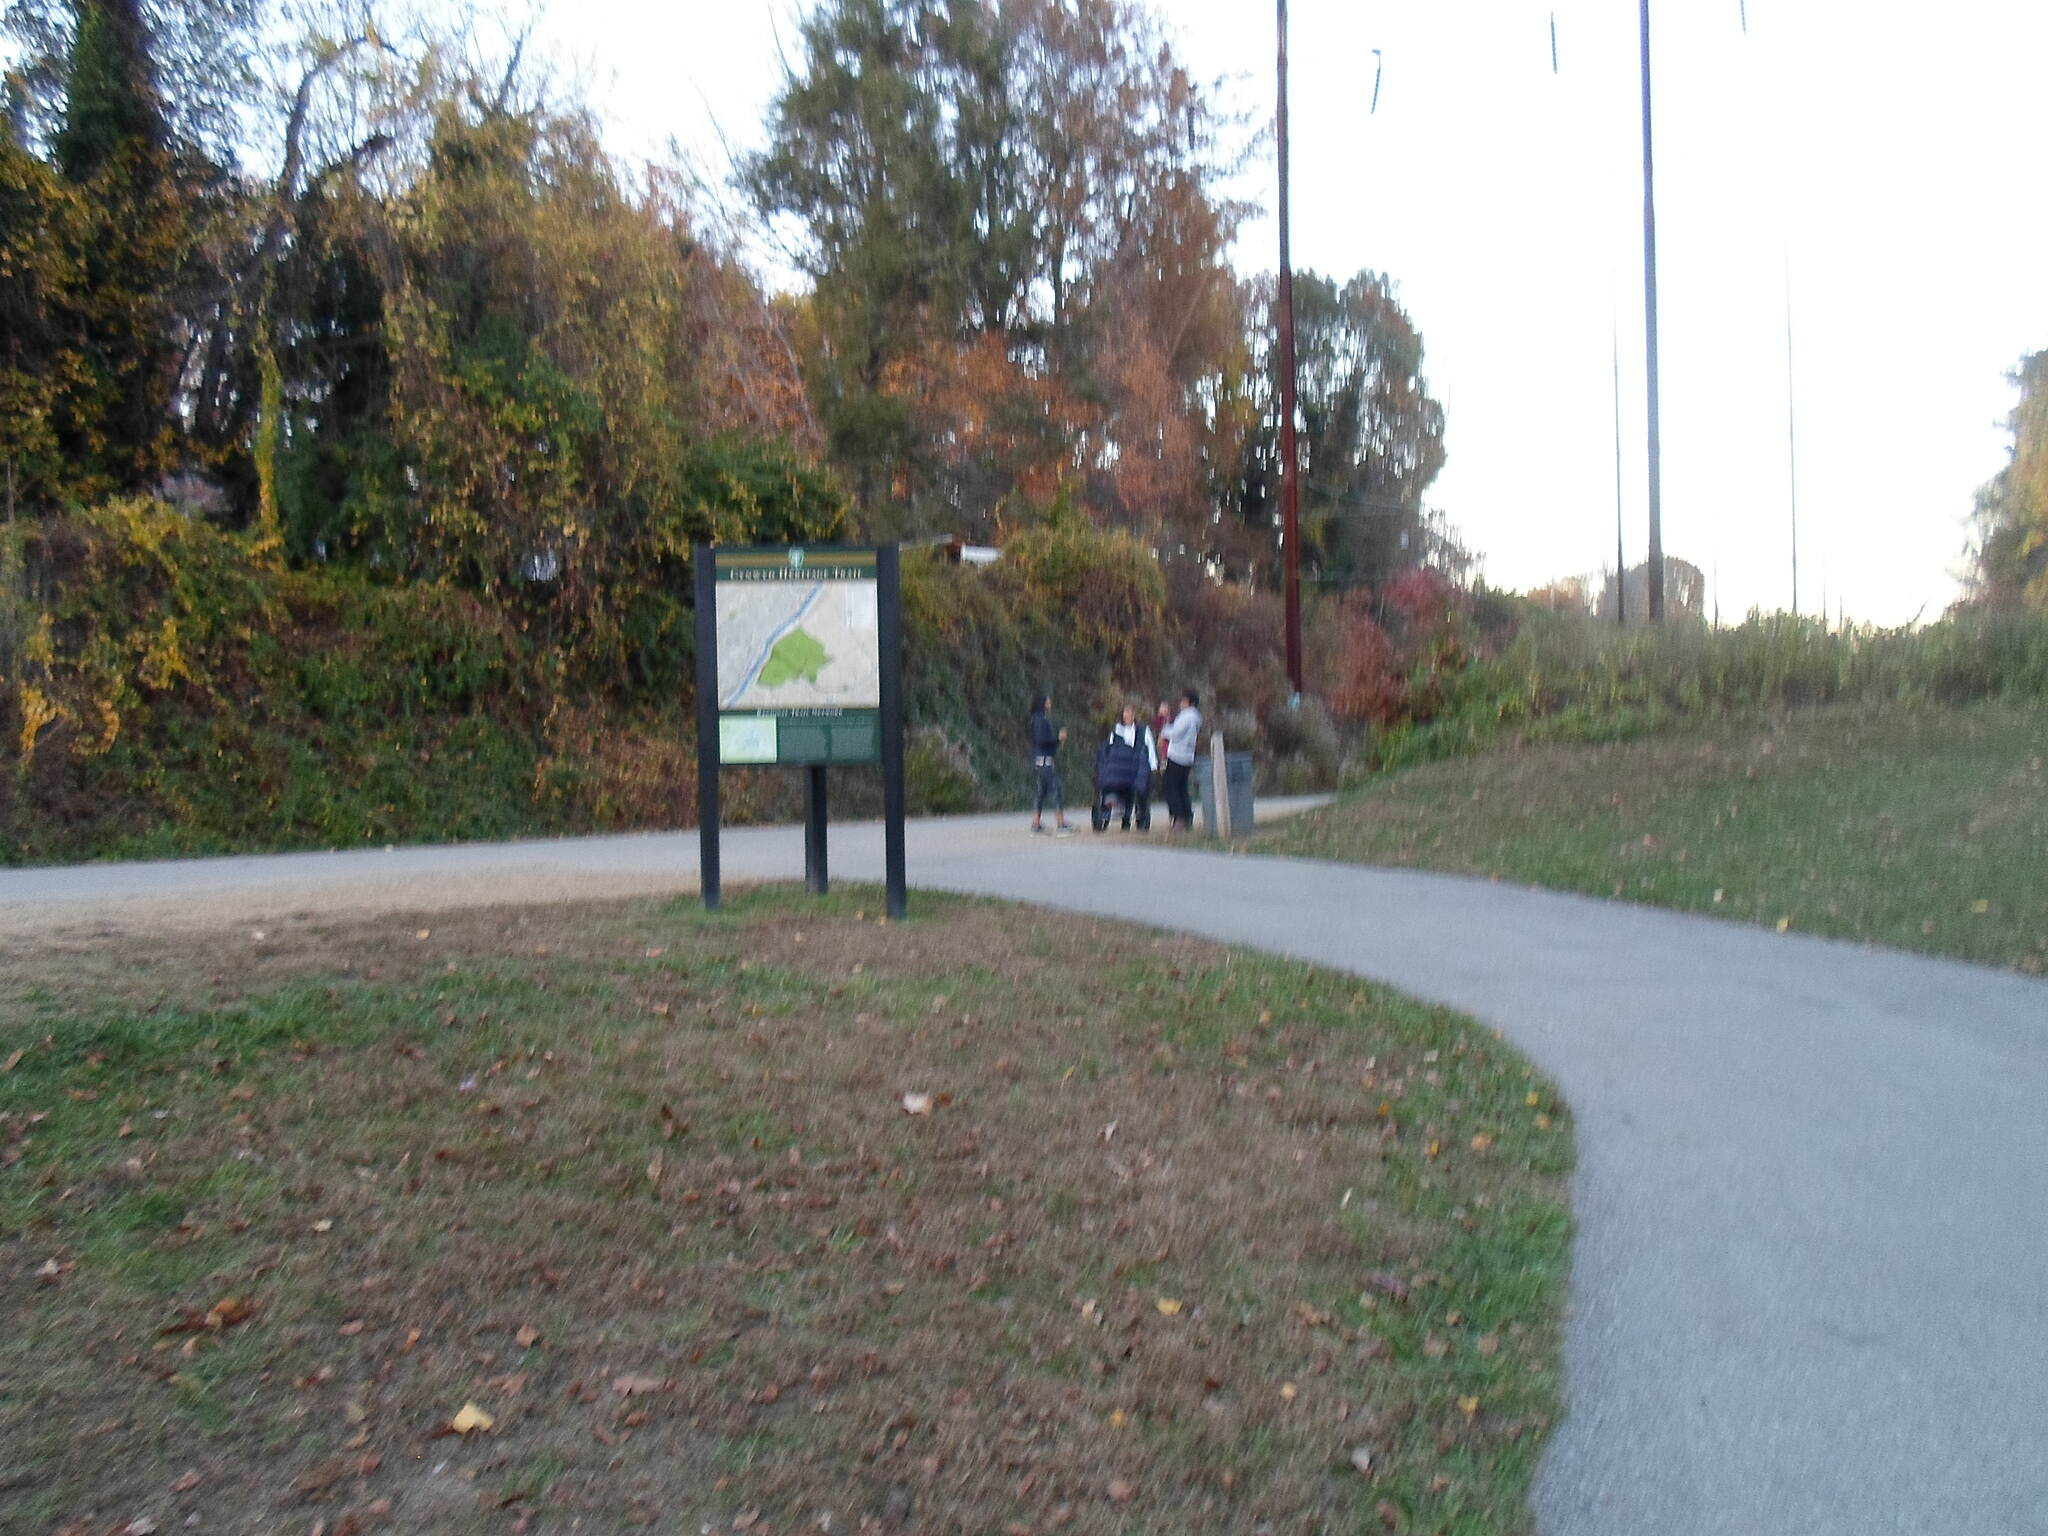 Cynwyd Heritage Trail Cynwyd Heritage Trail Family gathering and chatting at the junction of the trail and the access path to Lower Merion Twp. Park.